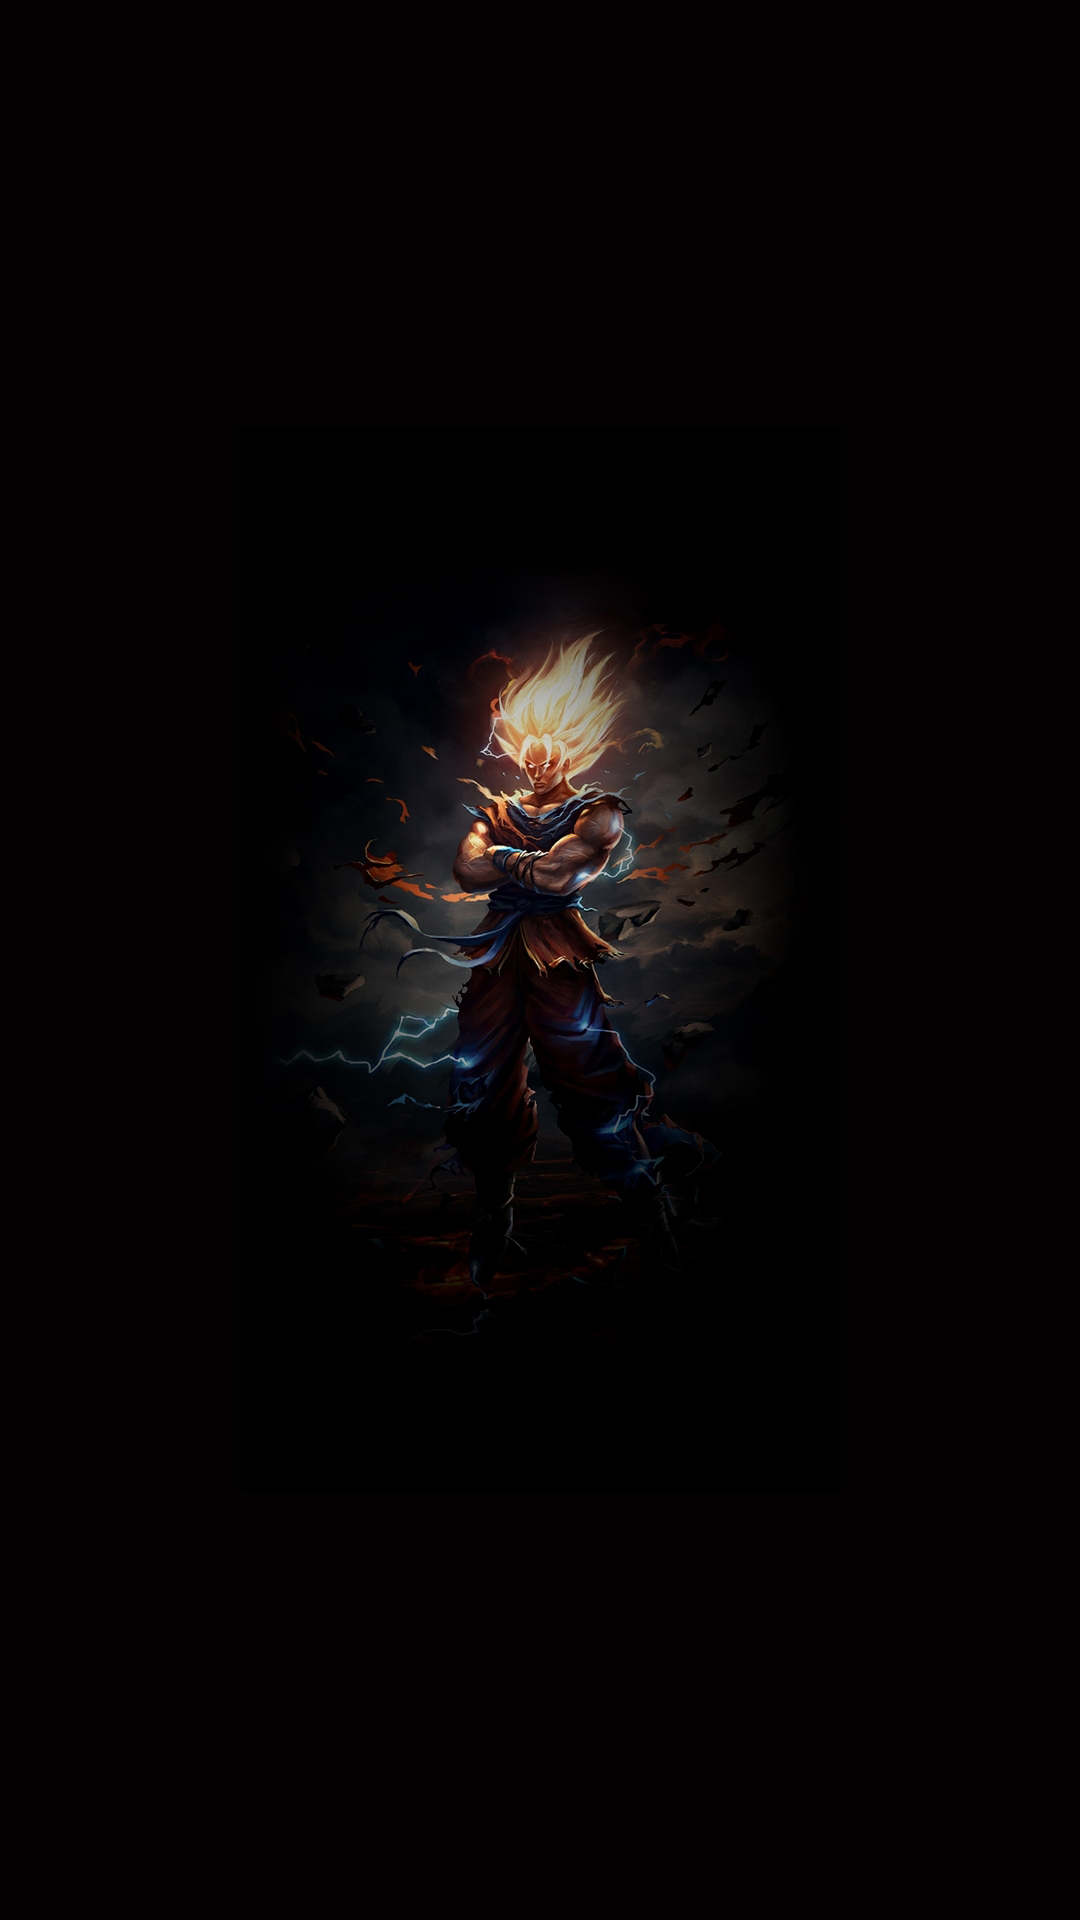 Dbz Iphone X Live Wallpaper Badass Wallpapers For Android 33 0f 40 Son Goku Dragon